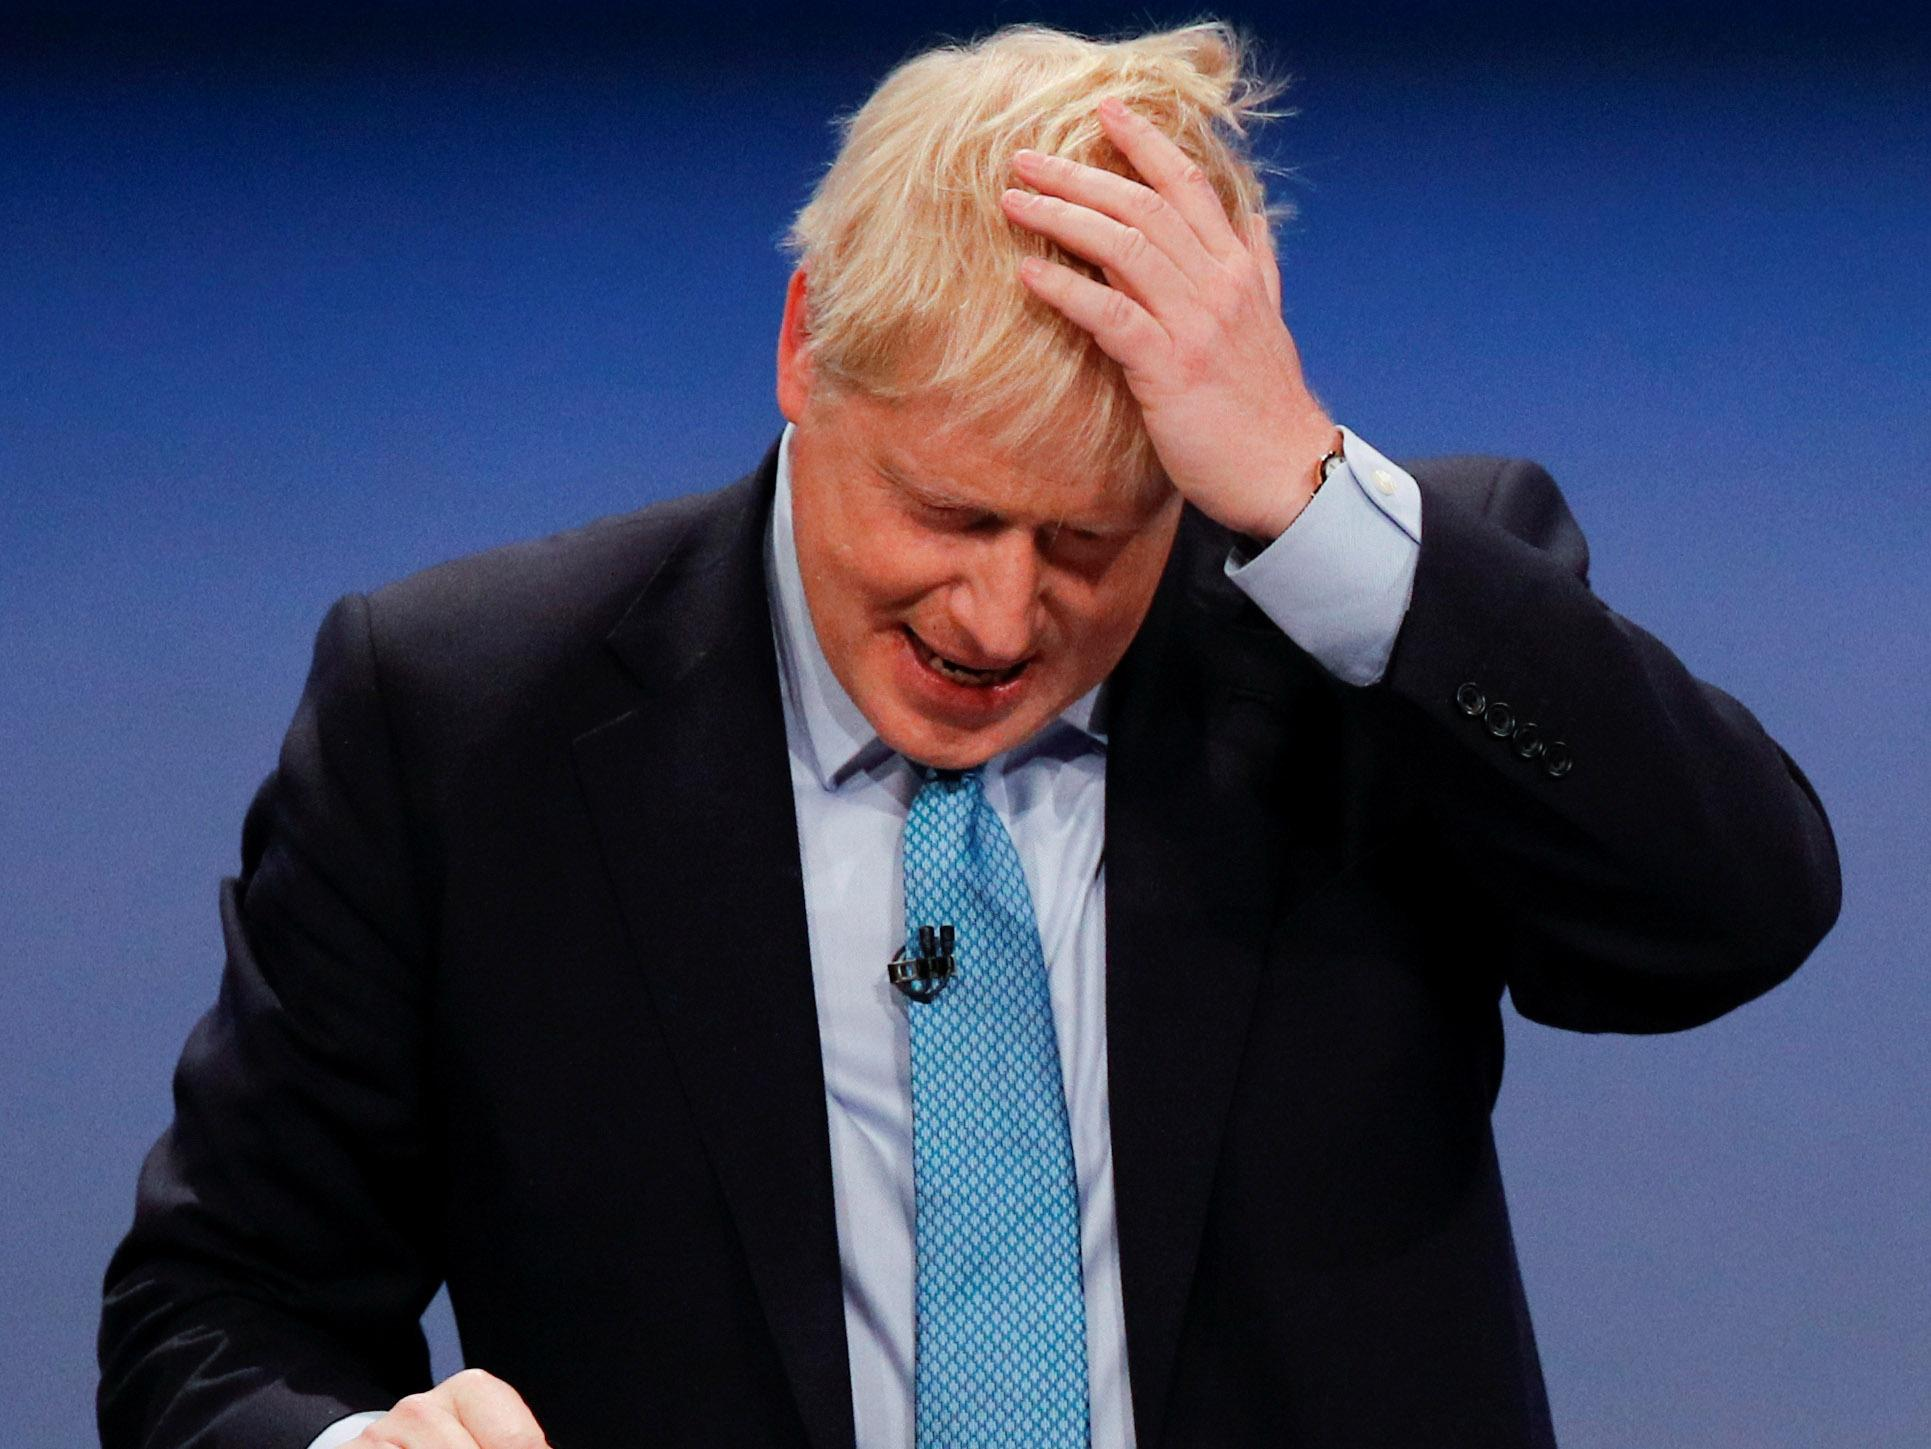 Boris Johnson to suspend parliament again next week ahead of Queen's Speech